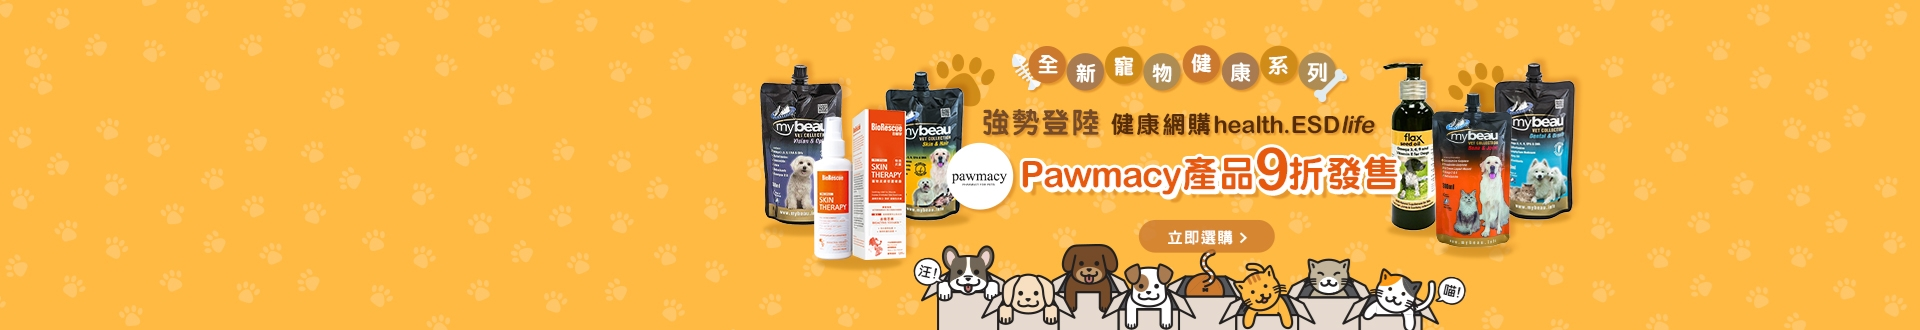 23oct_plus_pawmacy_promotion